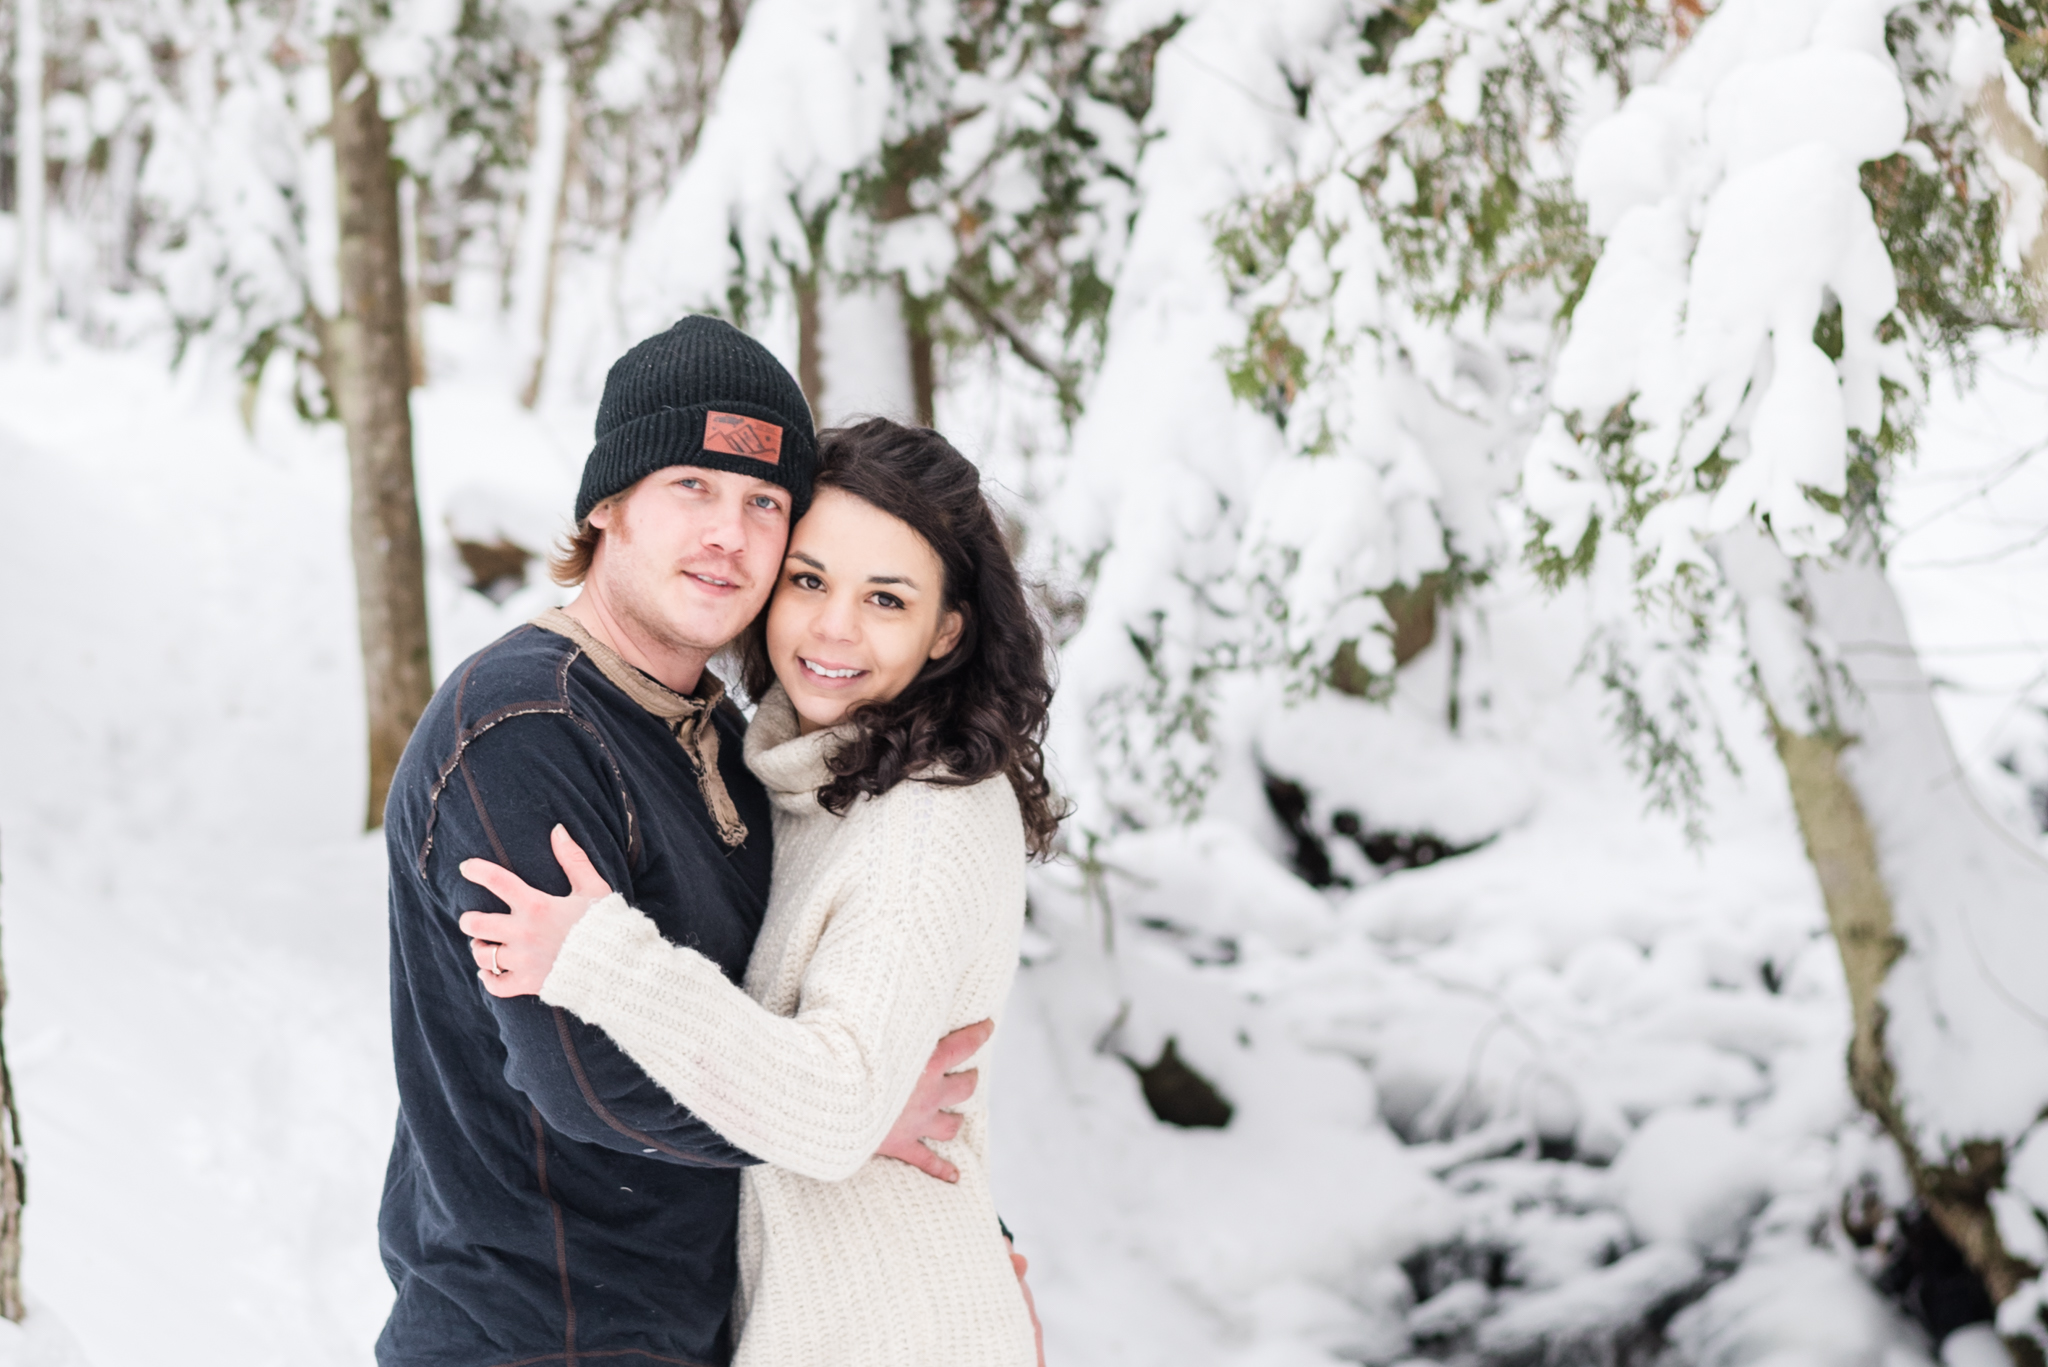 husband and wife embrace in the snowy woods learn about planning a winter family photo session in the upper peninsula michigan